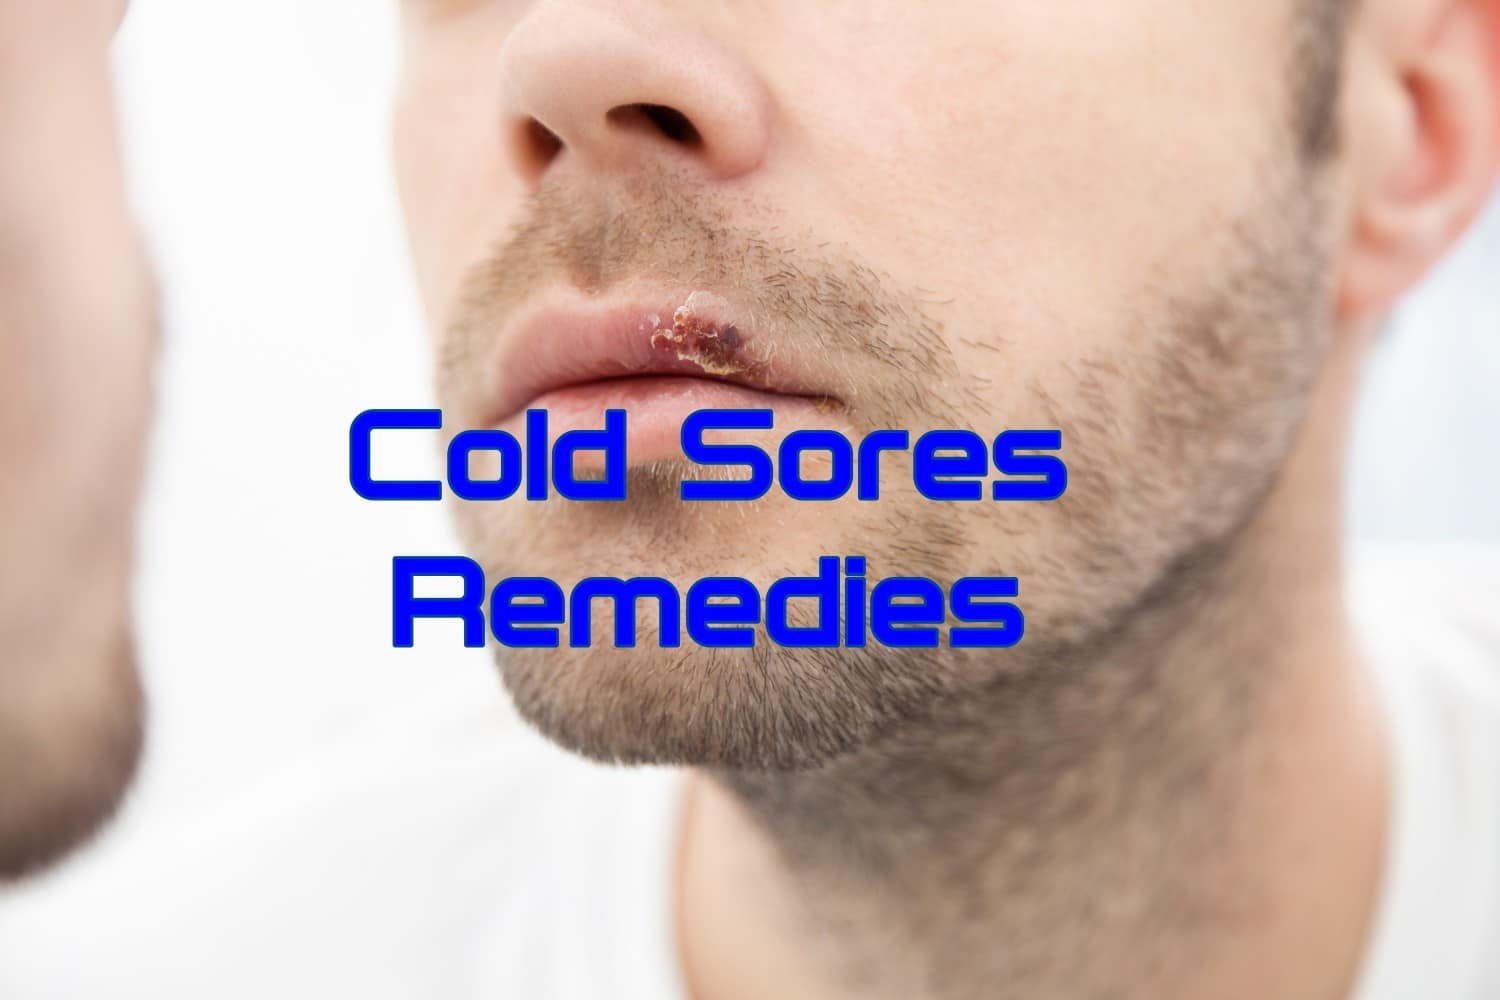 10 Home Remedies for Cold Sores